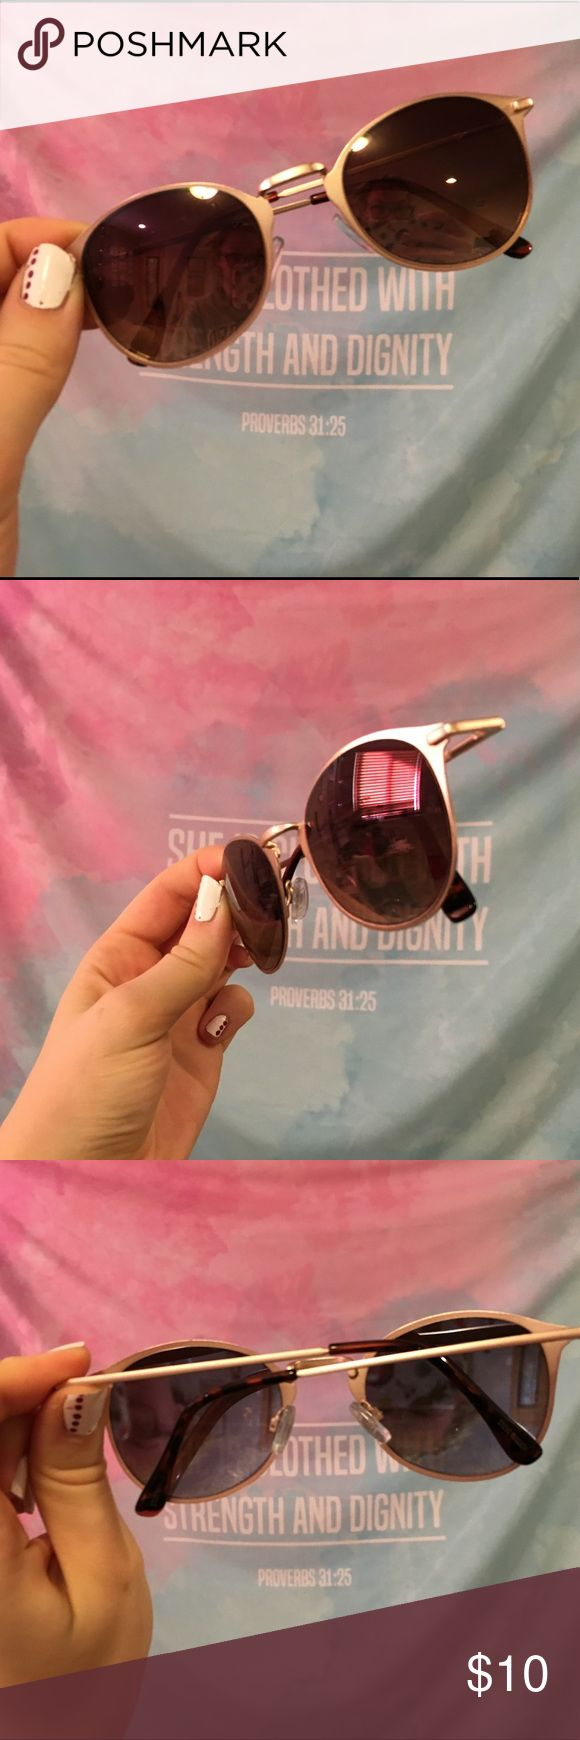 Gold Steve Madden Sunglasses Gold frame sunglasses ✨ only worn once! Great condition! Steve Madden Accessories Sunglasses